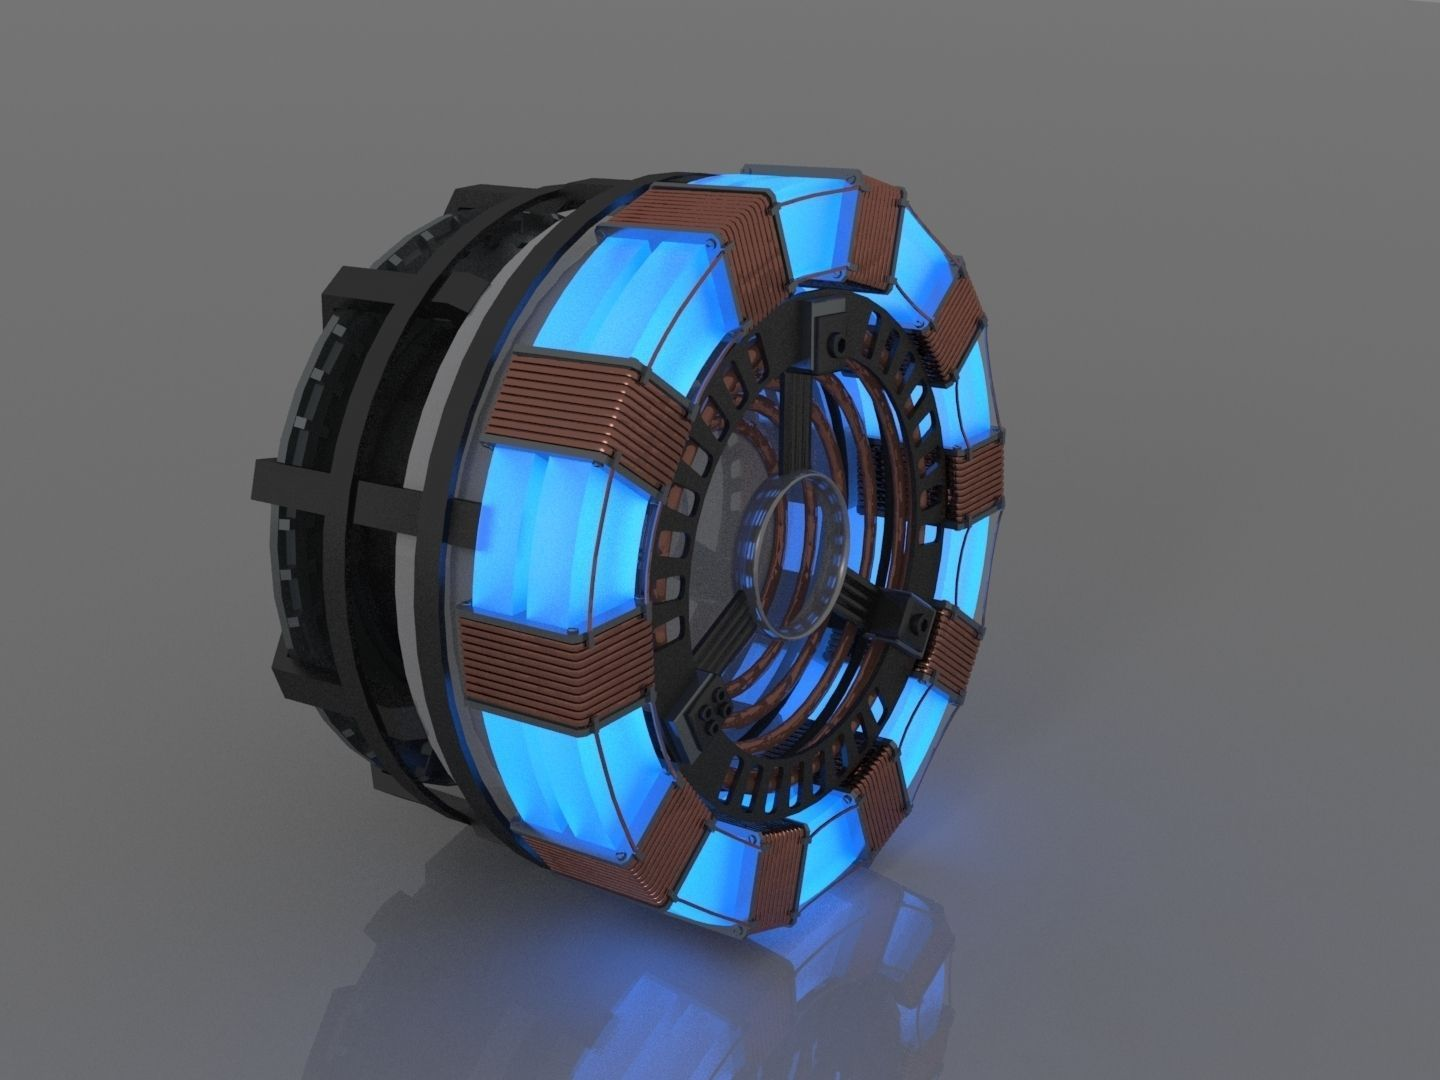 Iron Man Arc Reactor Mk1 in addition Moai additionally Project3 together with Panther Tank moreover Viewtopic. on iron man schematic